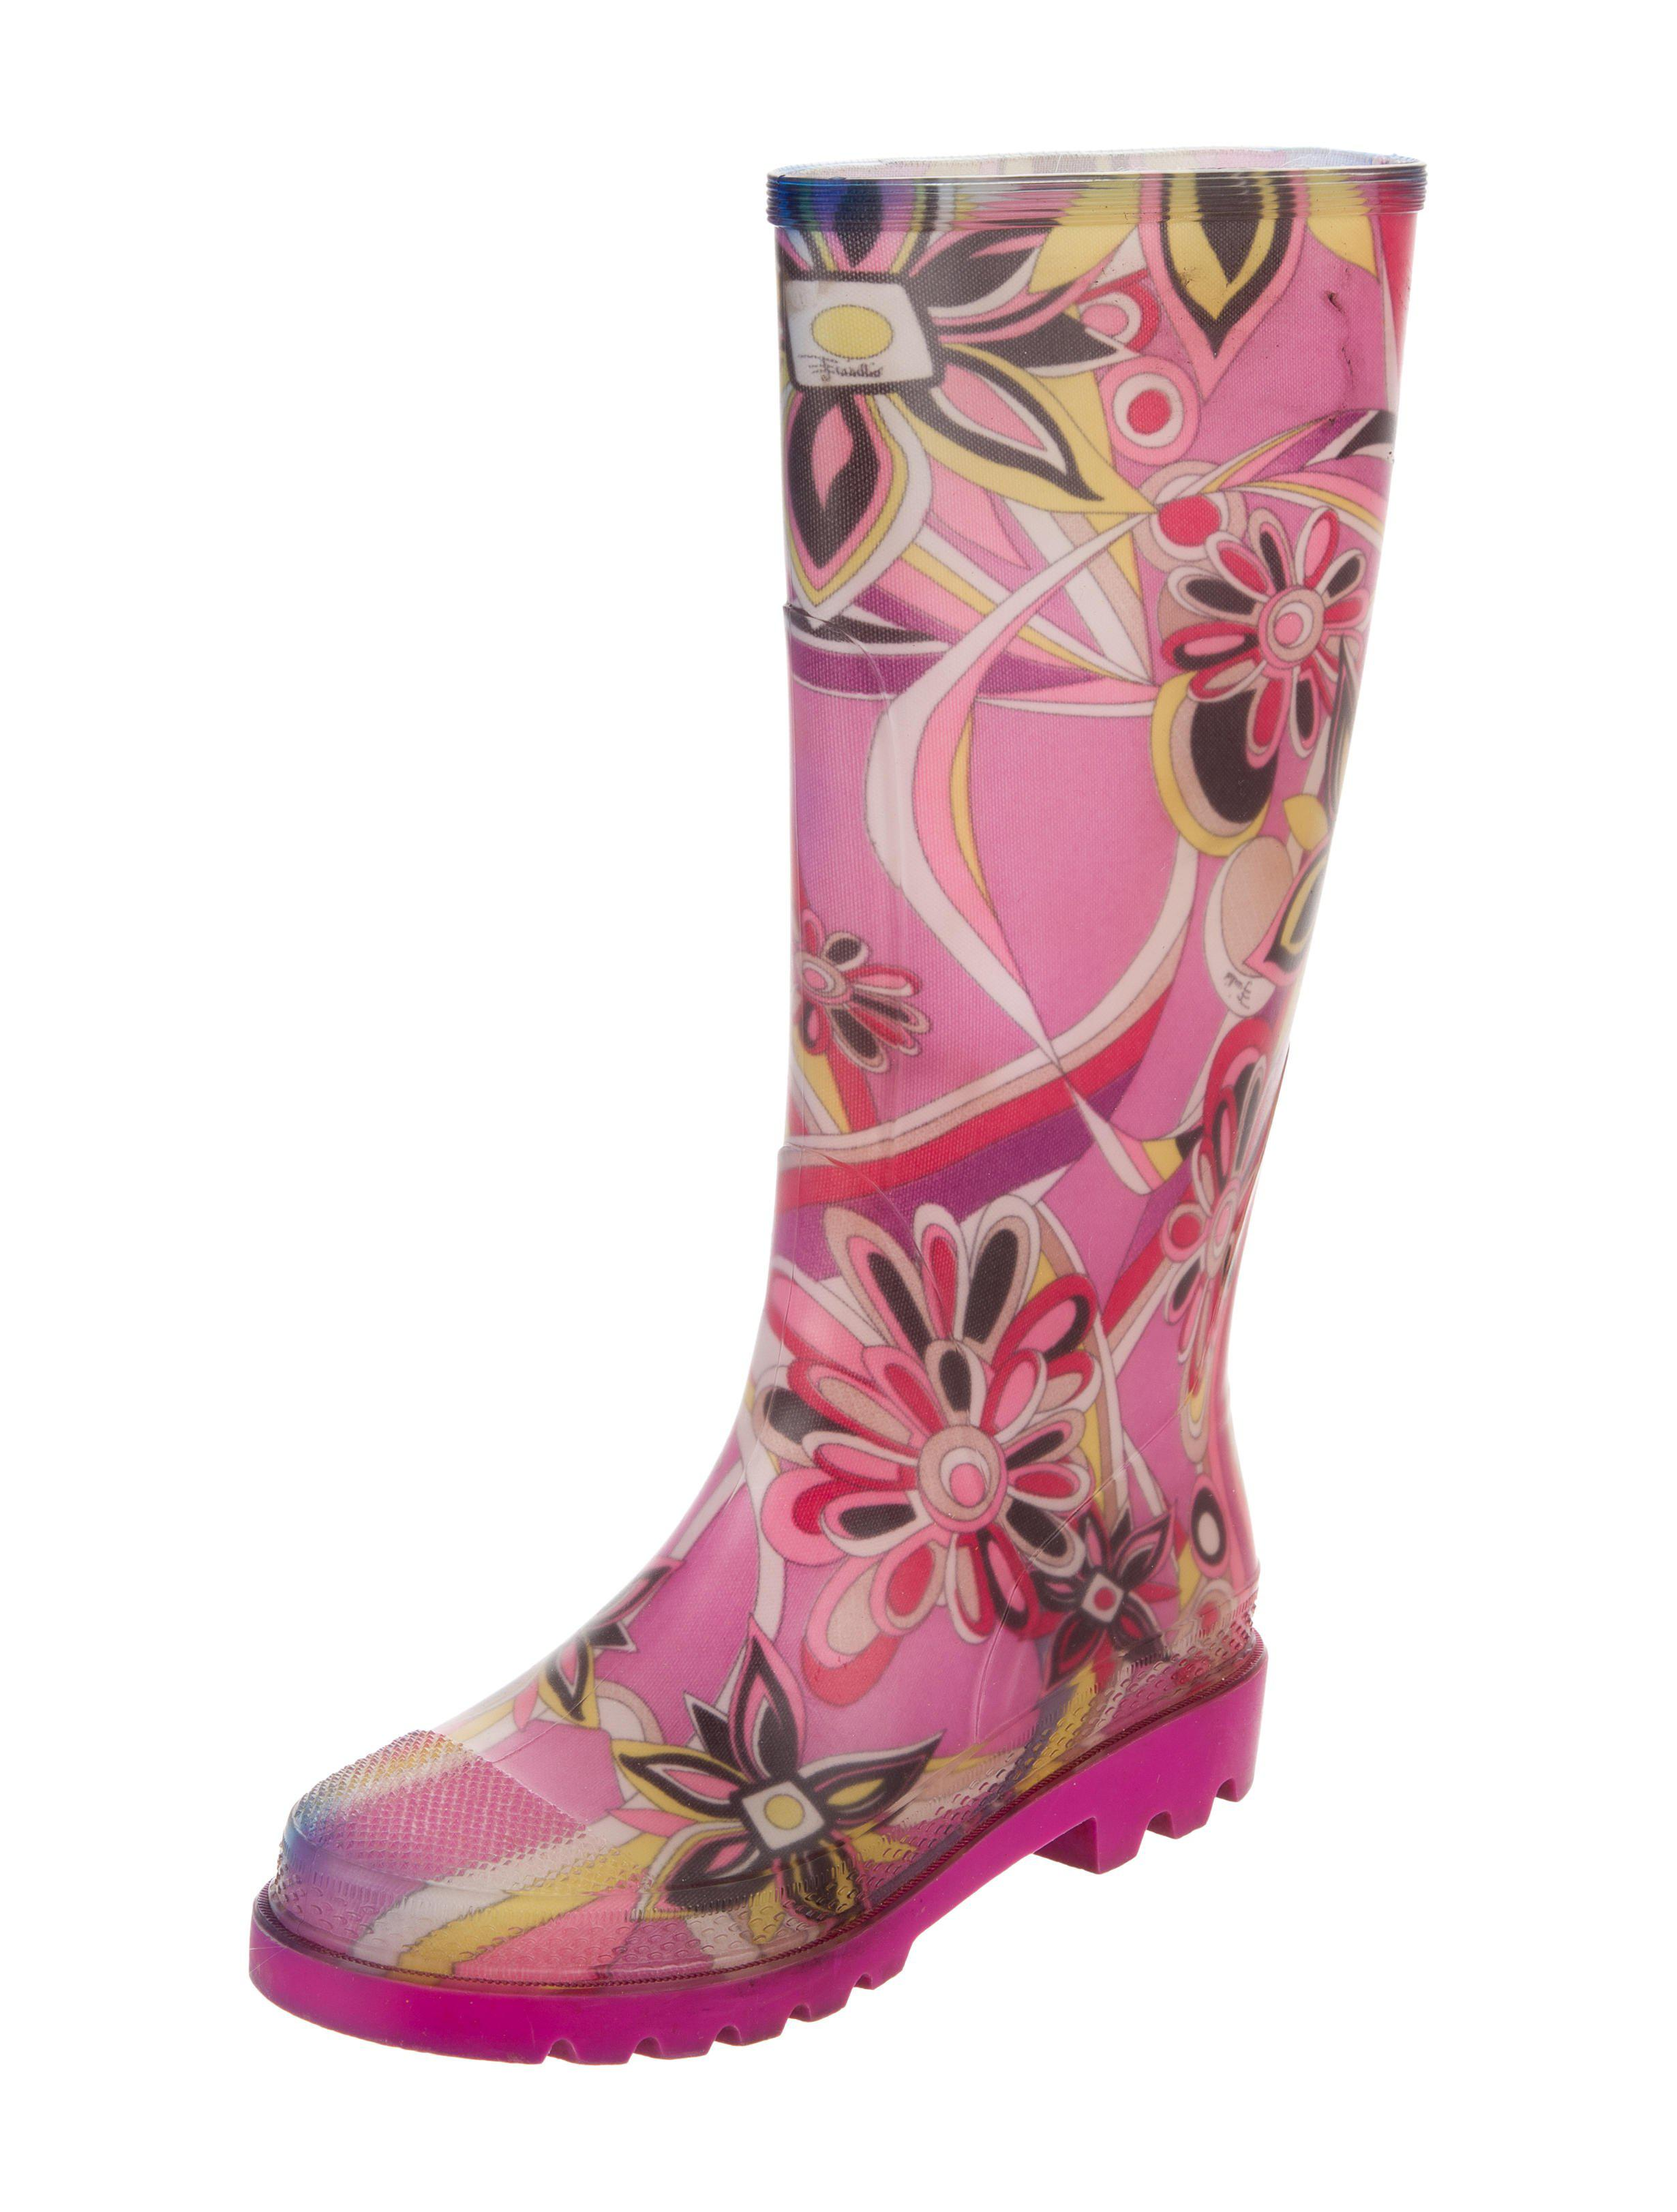 Emilio Pucci Round-Toe Rain Boots discount pre order free shipping many kinds of fake purchase online fy6G2